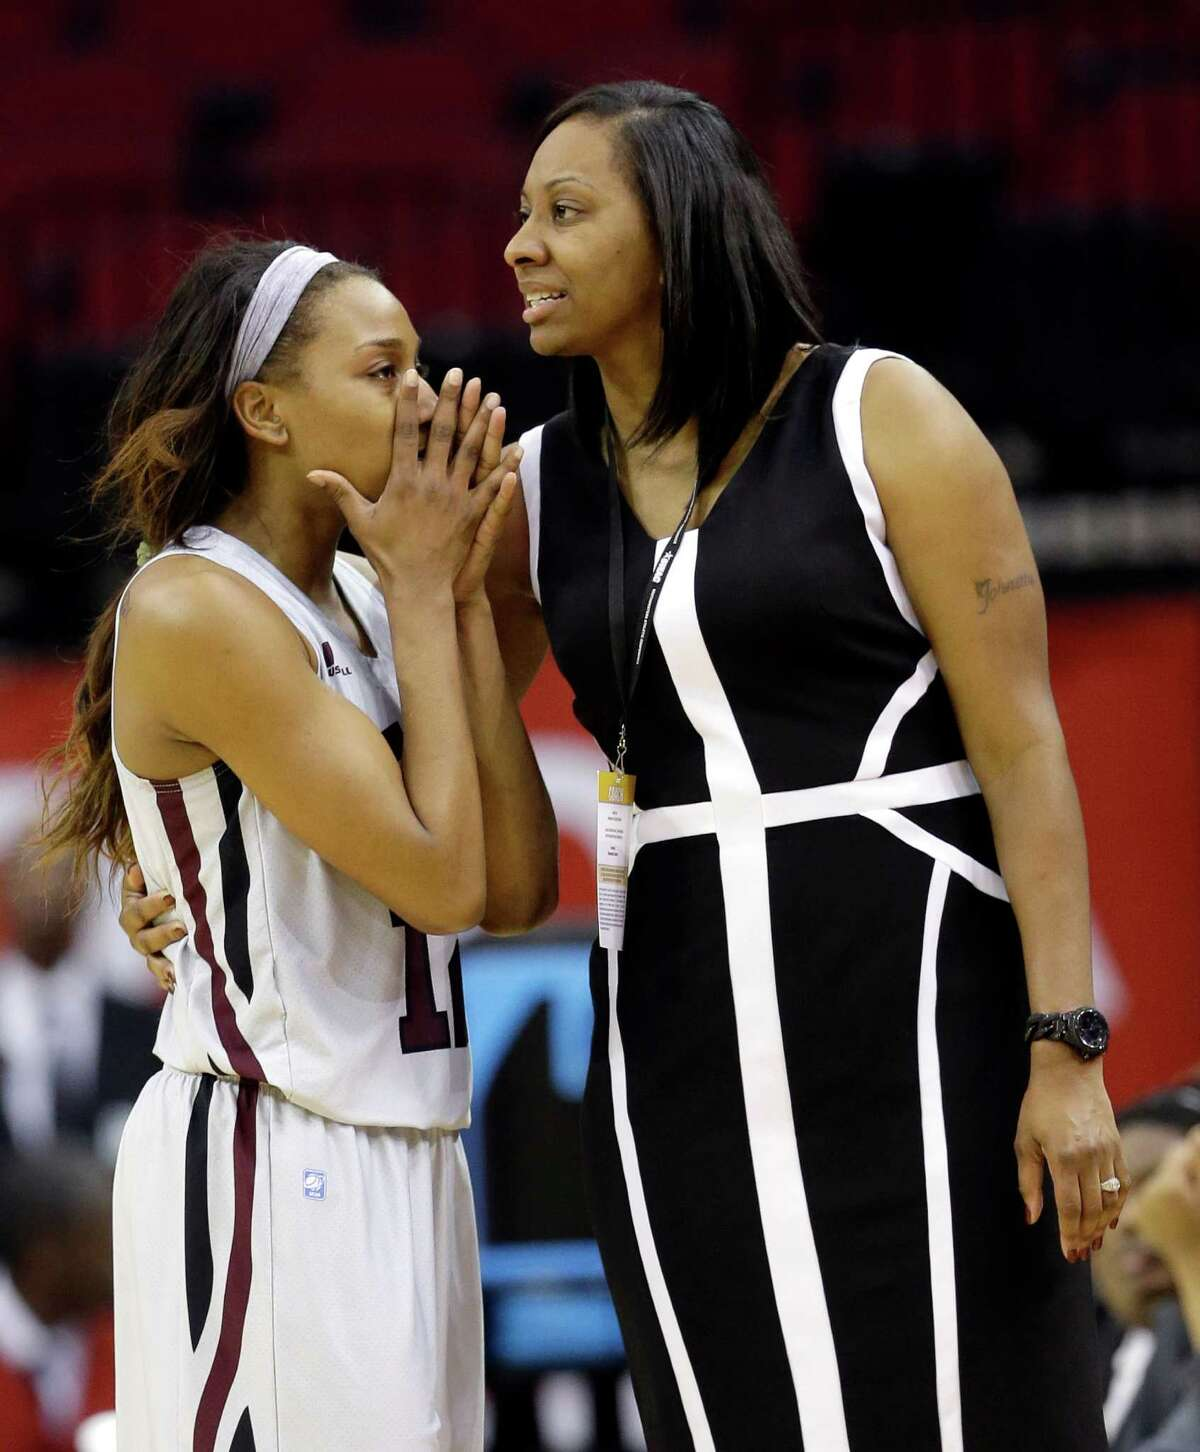 Texas Southern's Morgan Simmons, left, talks with her coach Johnetta Hayes-Perry after being called for technical foul during the closings minutes of the second half of an NCAA college basketball game against Prairie View A&M in the championship of the Southwestern Athletic Conference tournament Saturday, March 15, 2014, in Houston. Prairie View A&M won 63-58. (AP Photo/David J. Phillip)